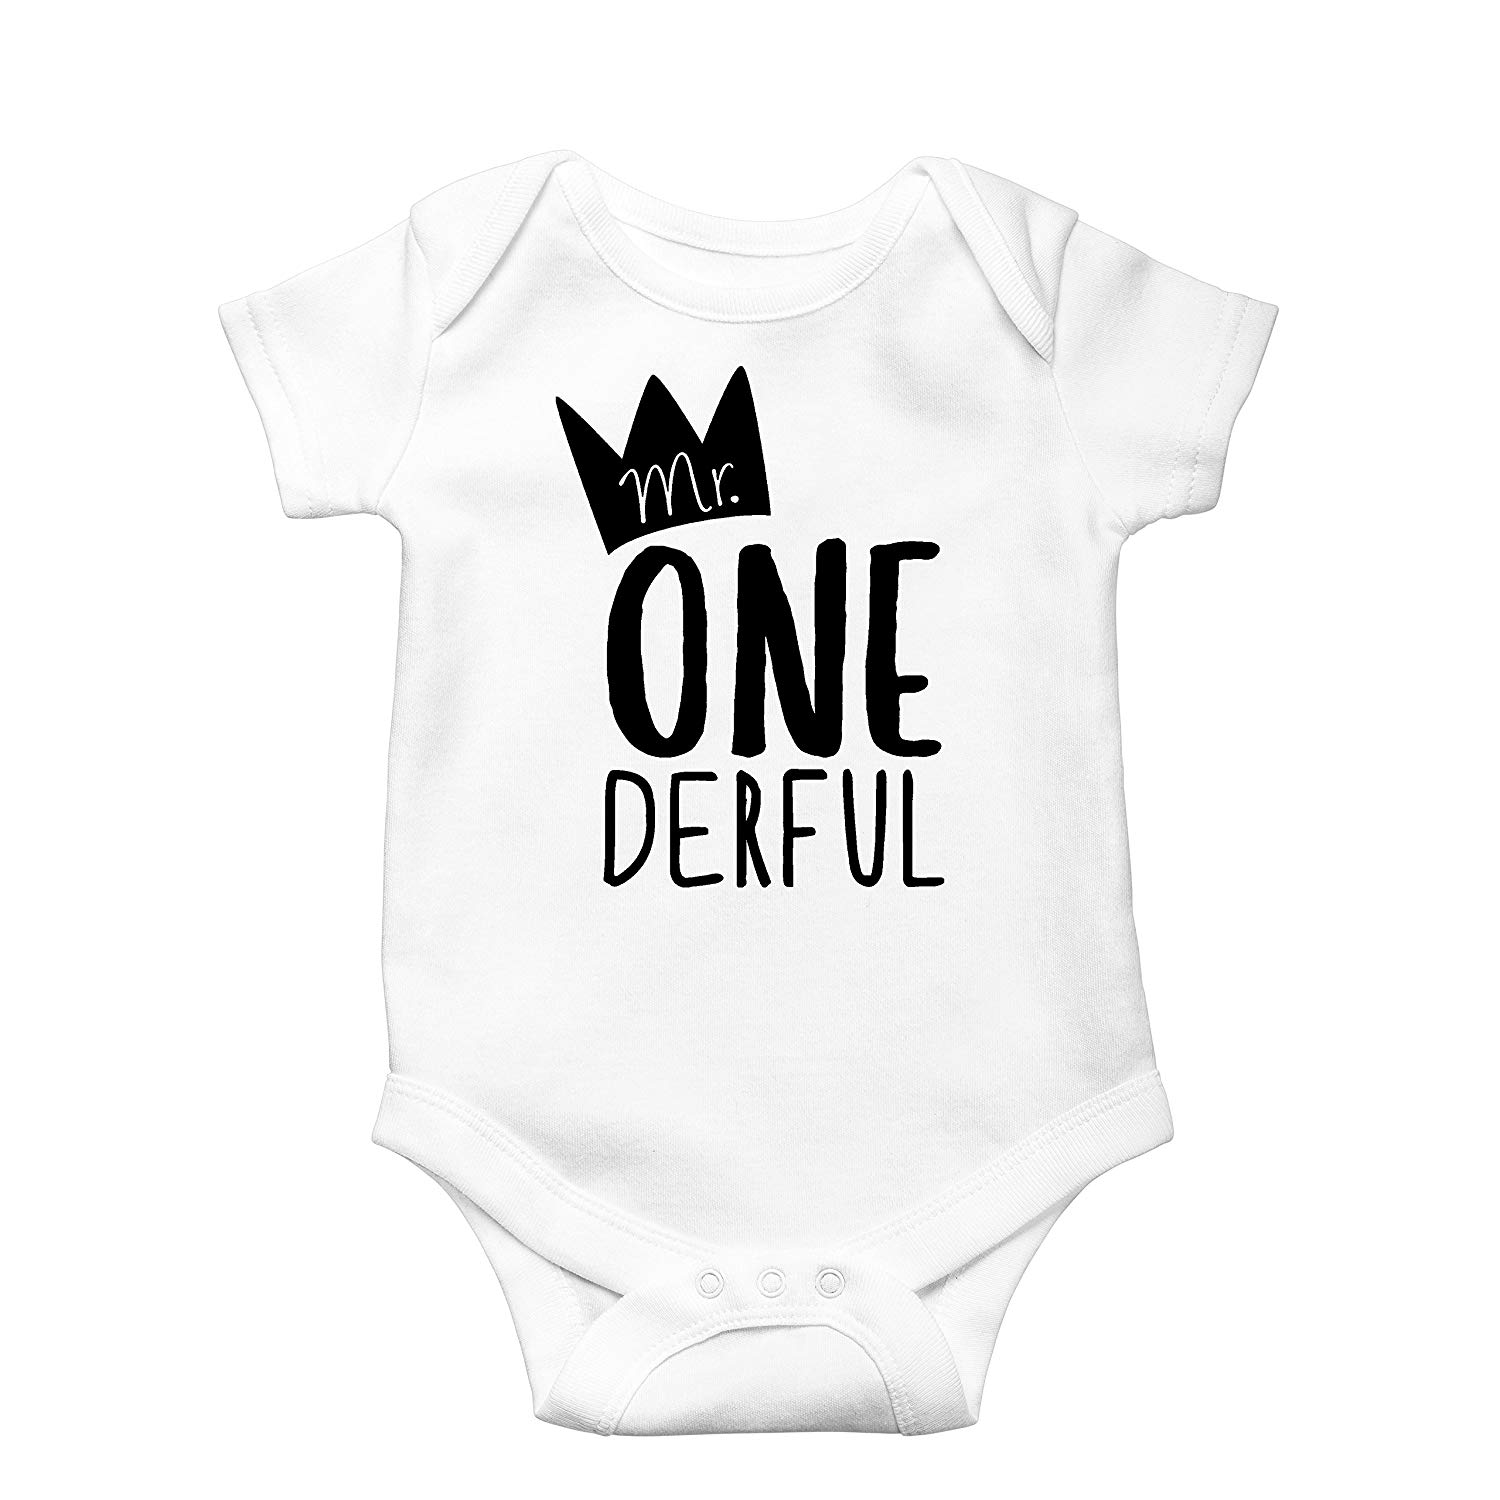 c659a4e64 Get Quotations · Mr One-Derful Baby Boys 1st Birthday Bodysuit First  Birthday Outfit for Boys